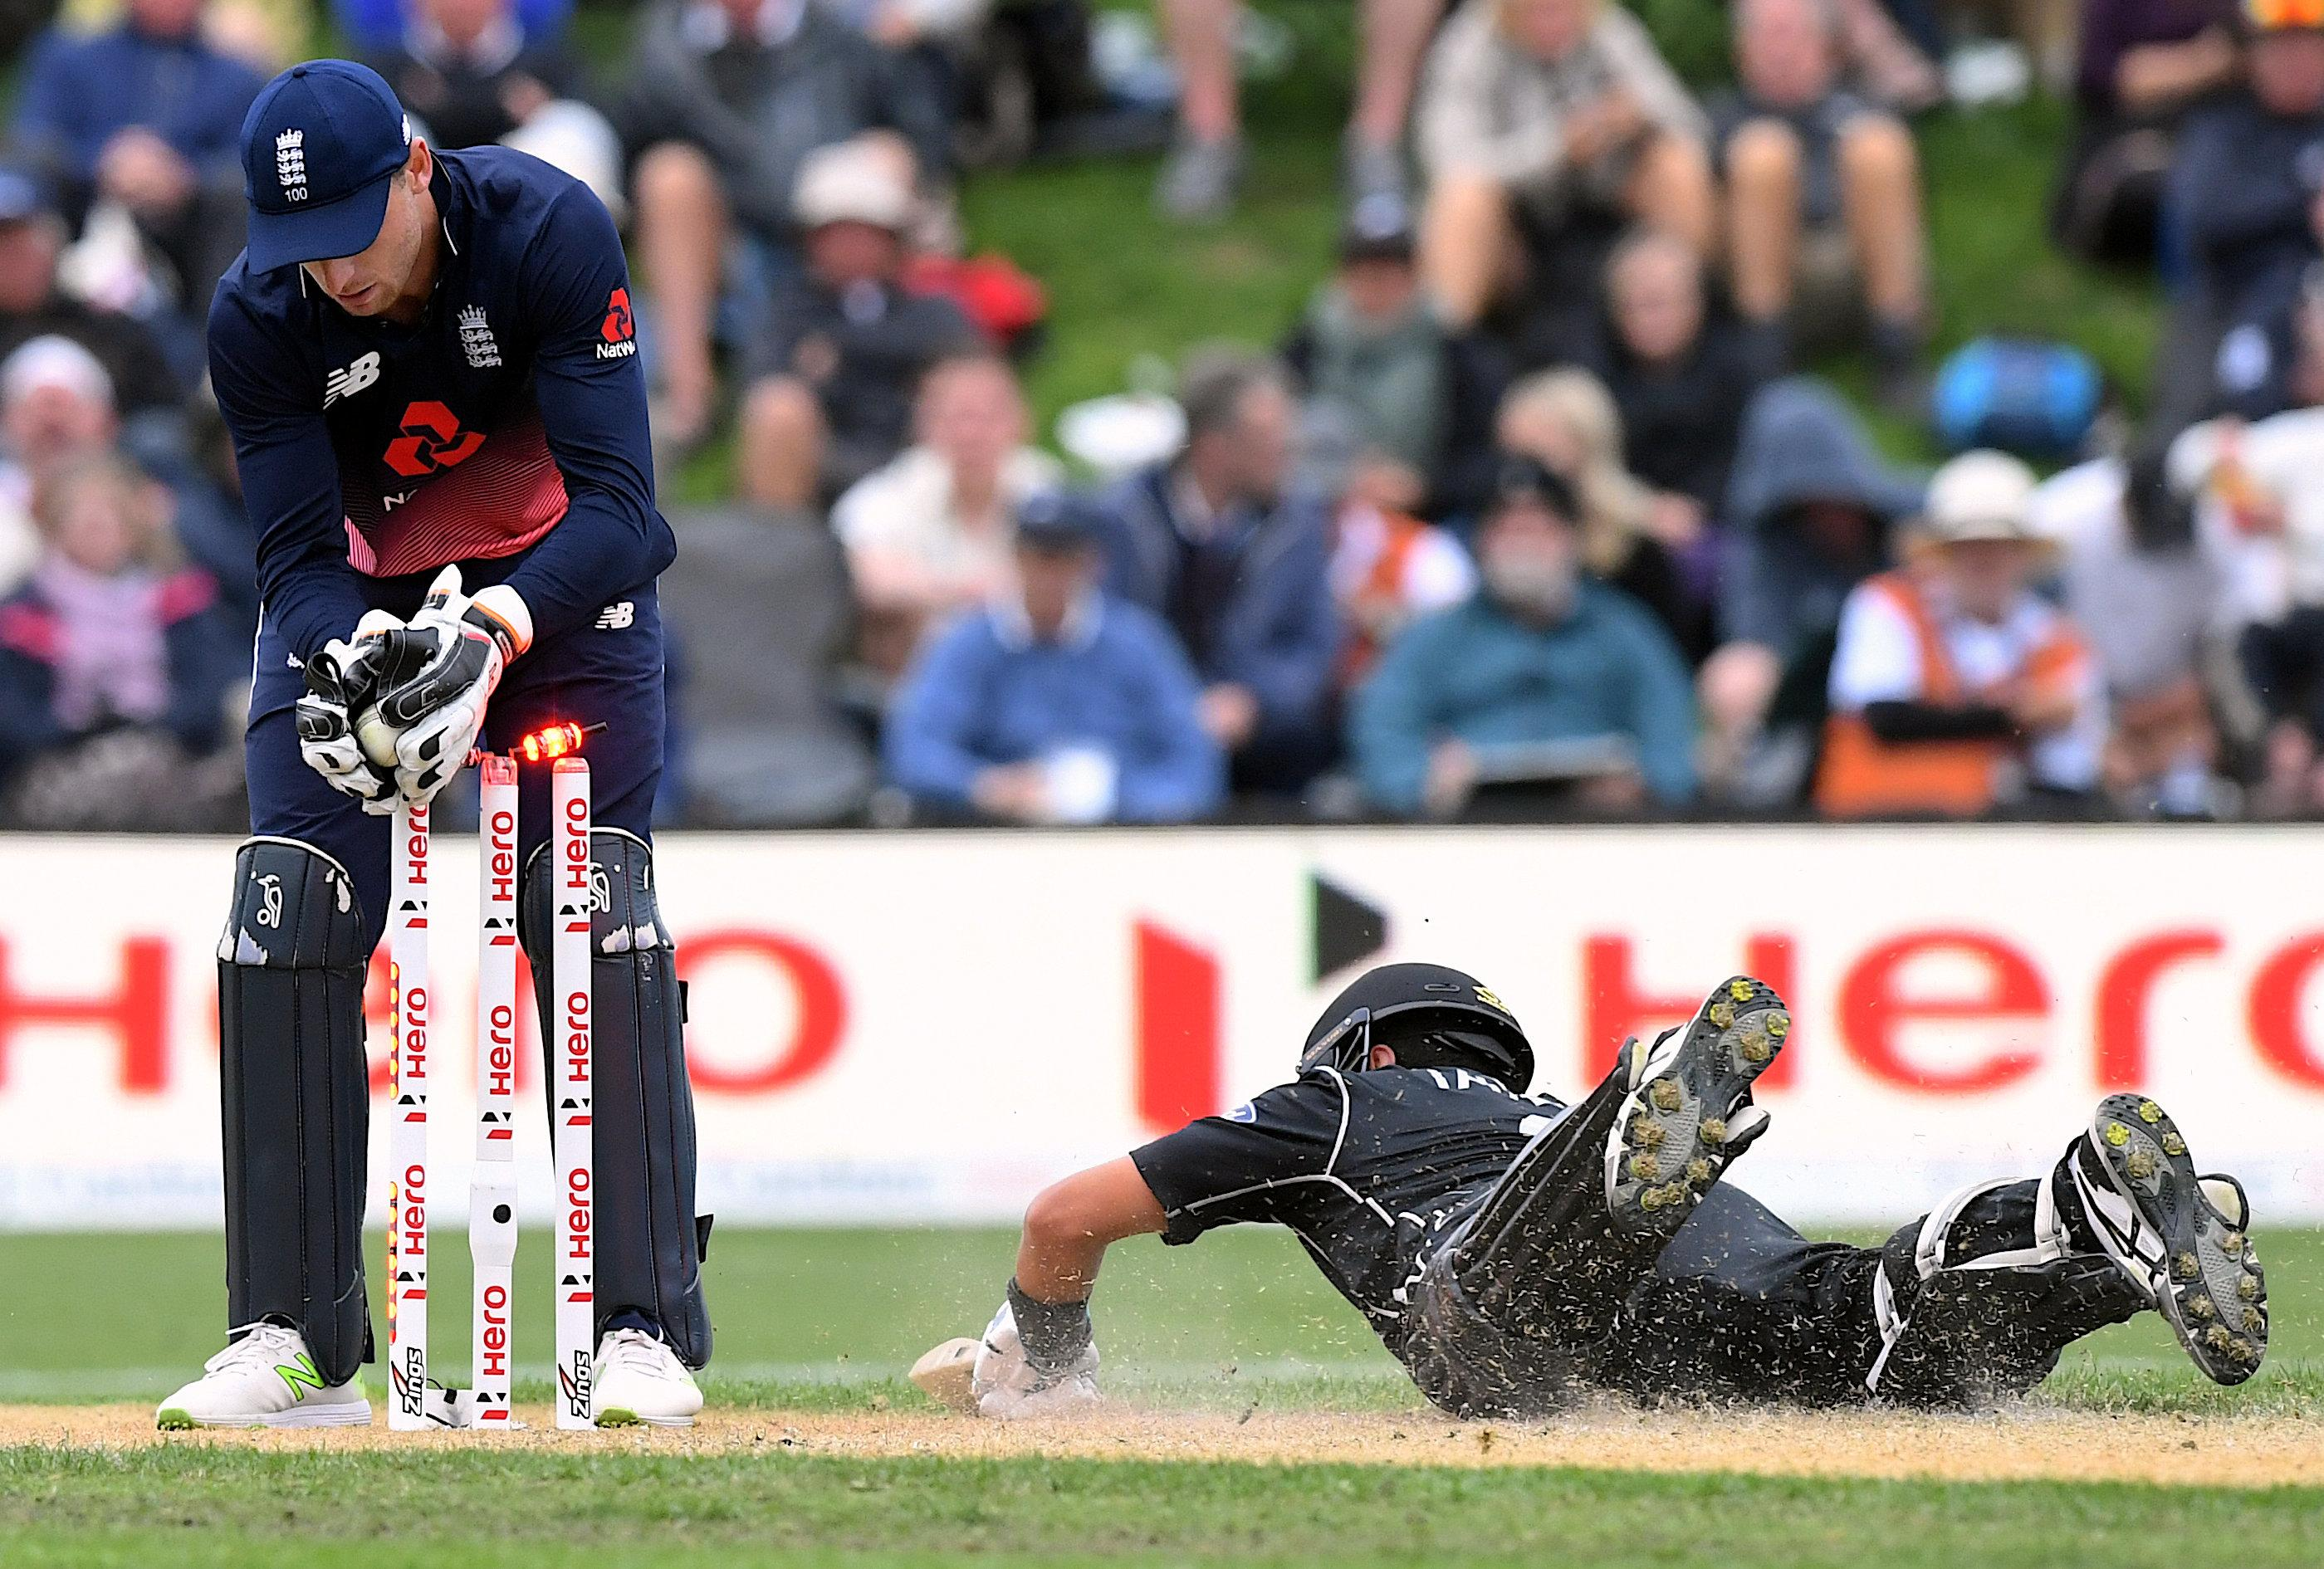 Ross Taylor had a couple of close calls but England failed to get the wicket